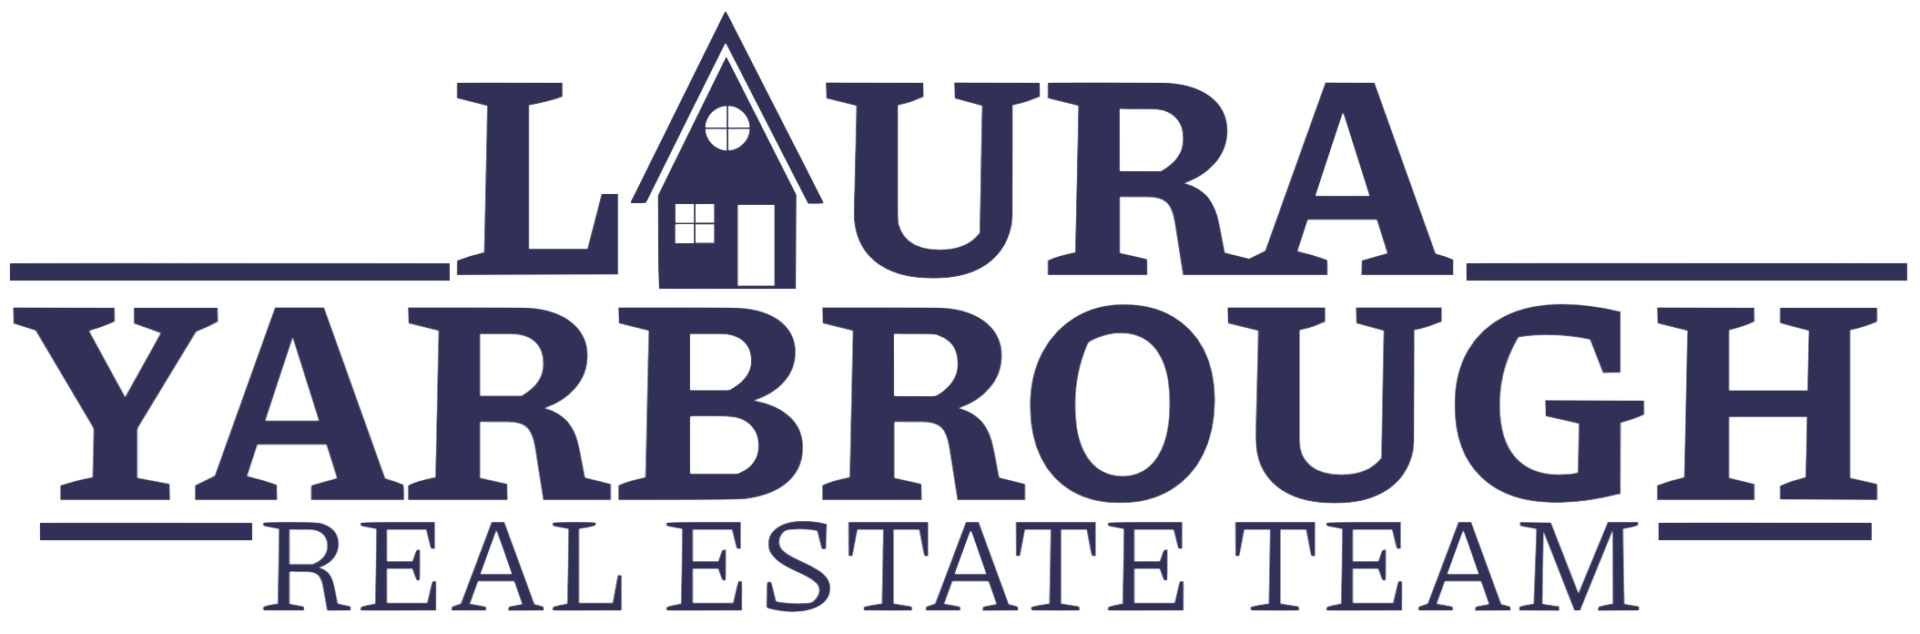 Laura Yarbrough Real Estate Team logo